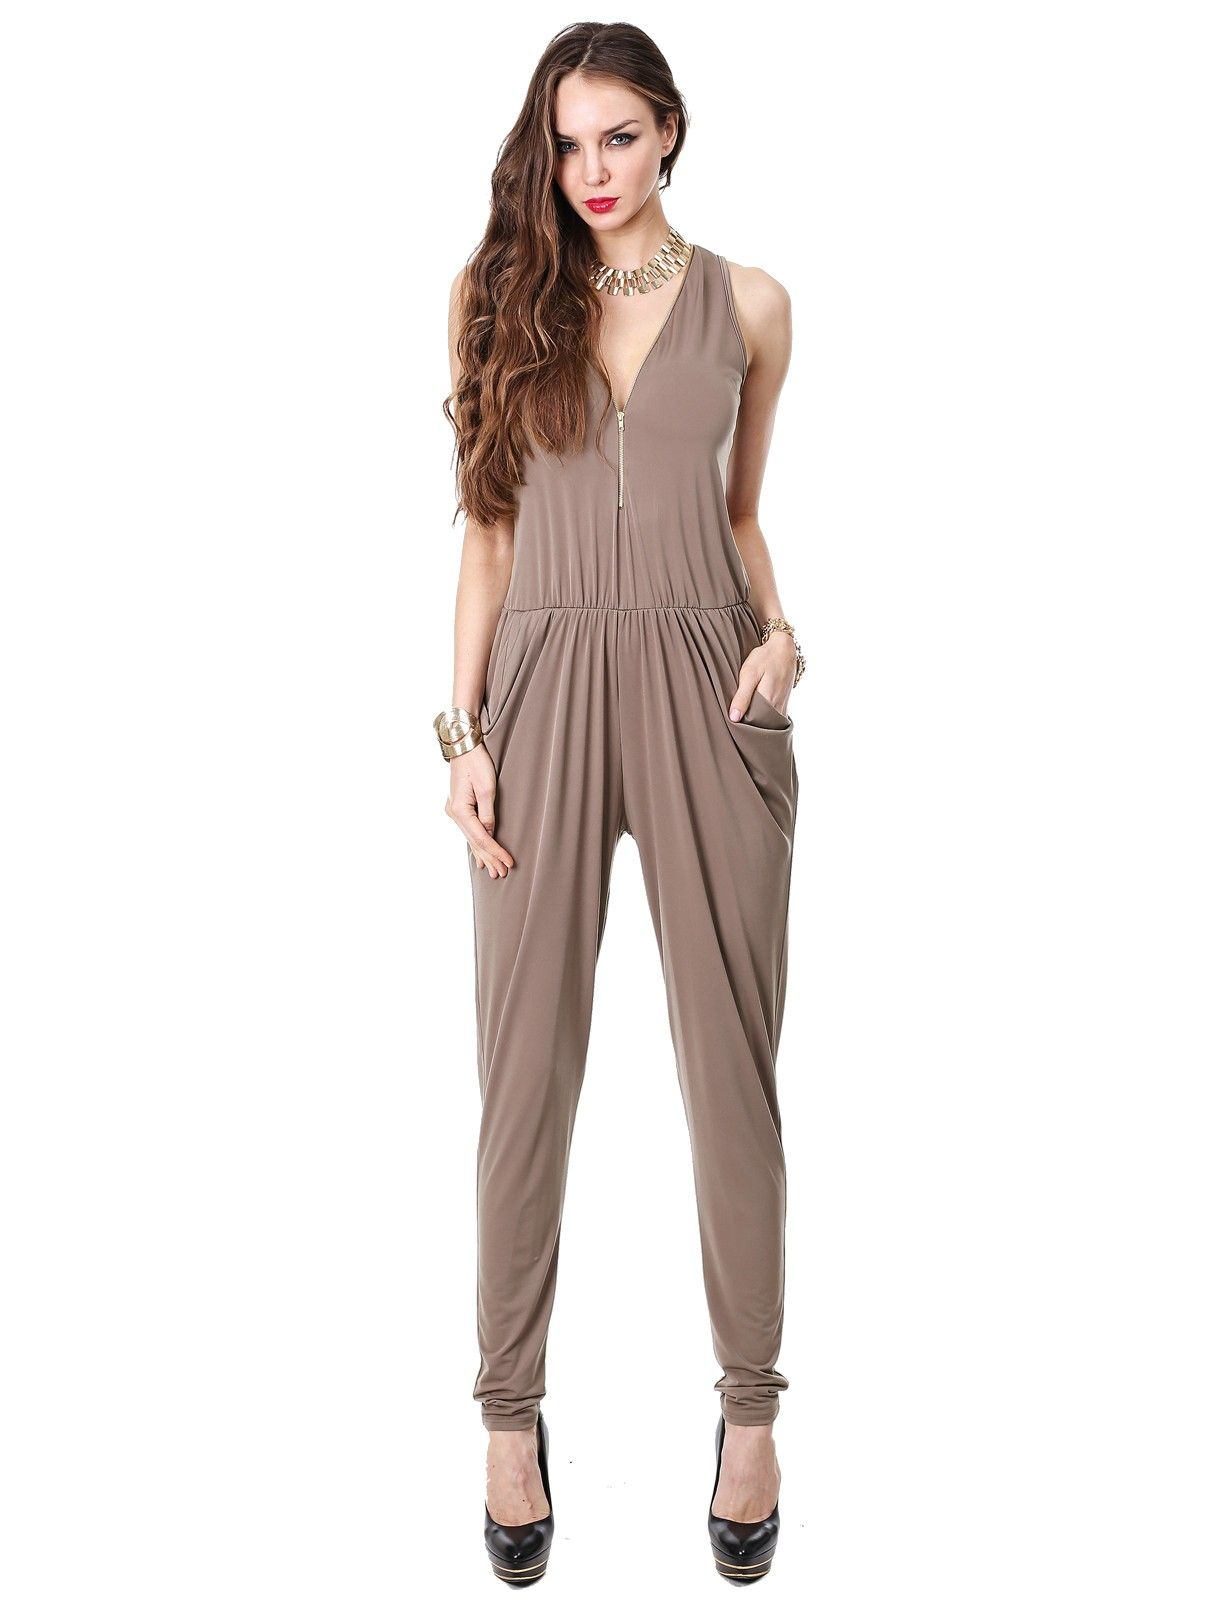 Chic Sleeveless Stretchy Jumpsuit #11foxy